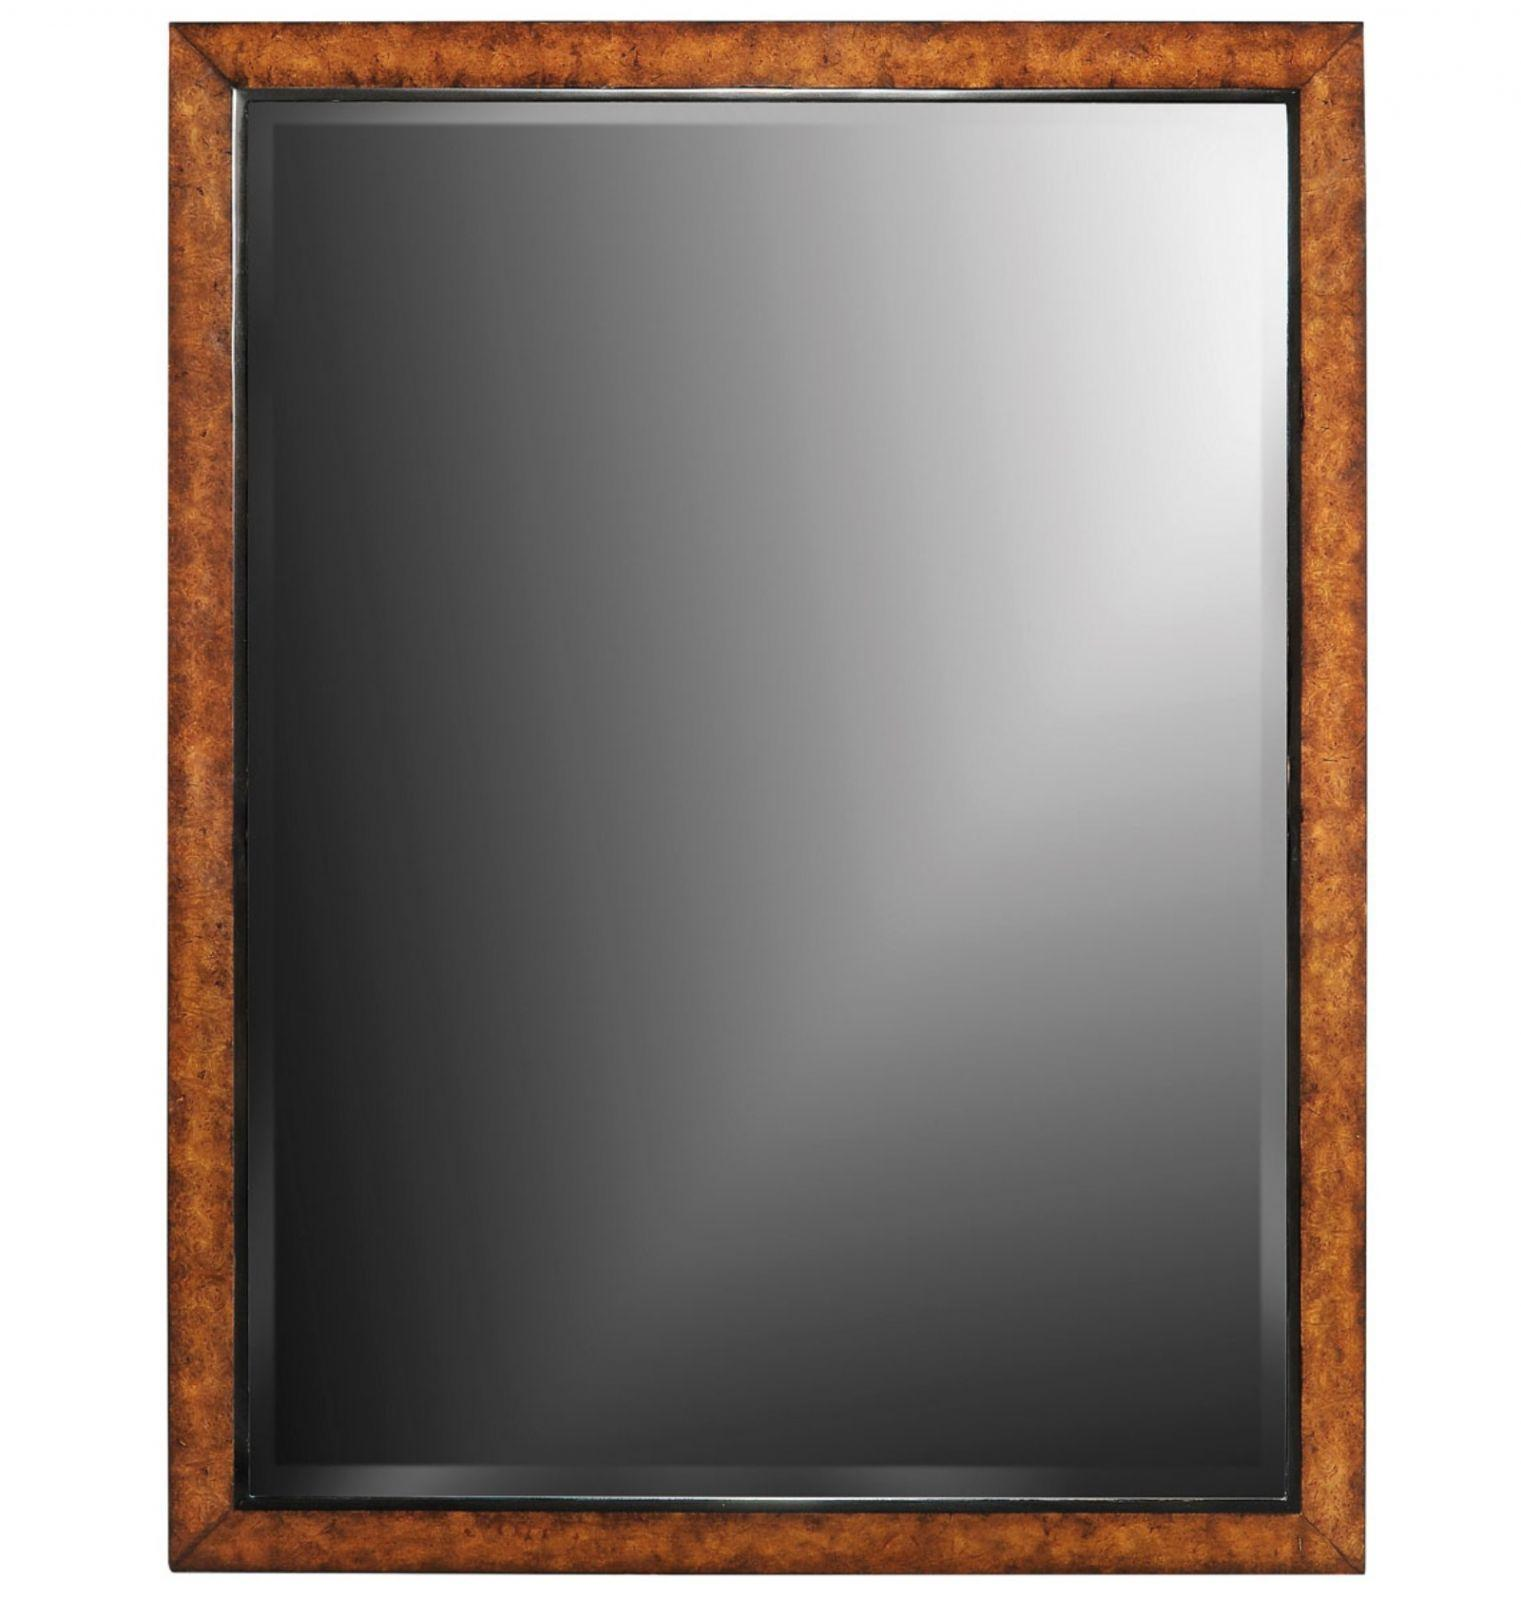 Dorchester wall mirror - large